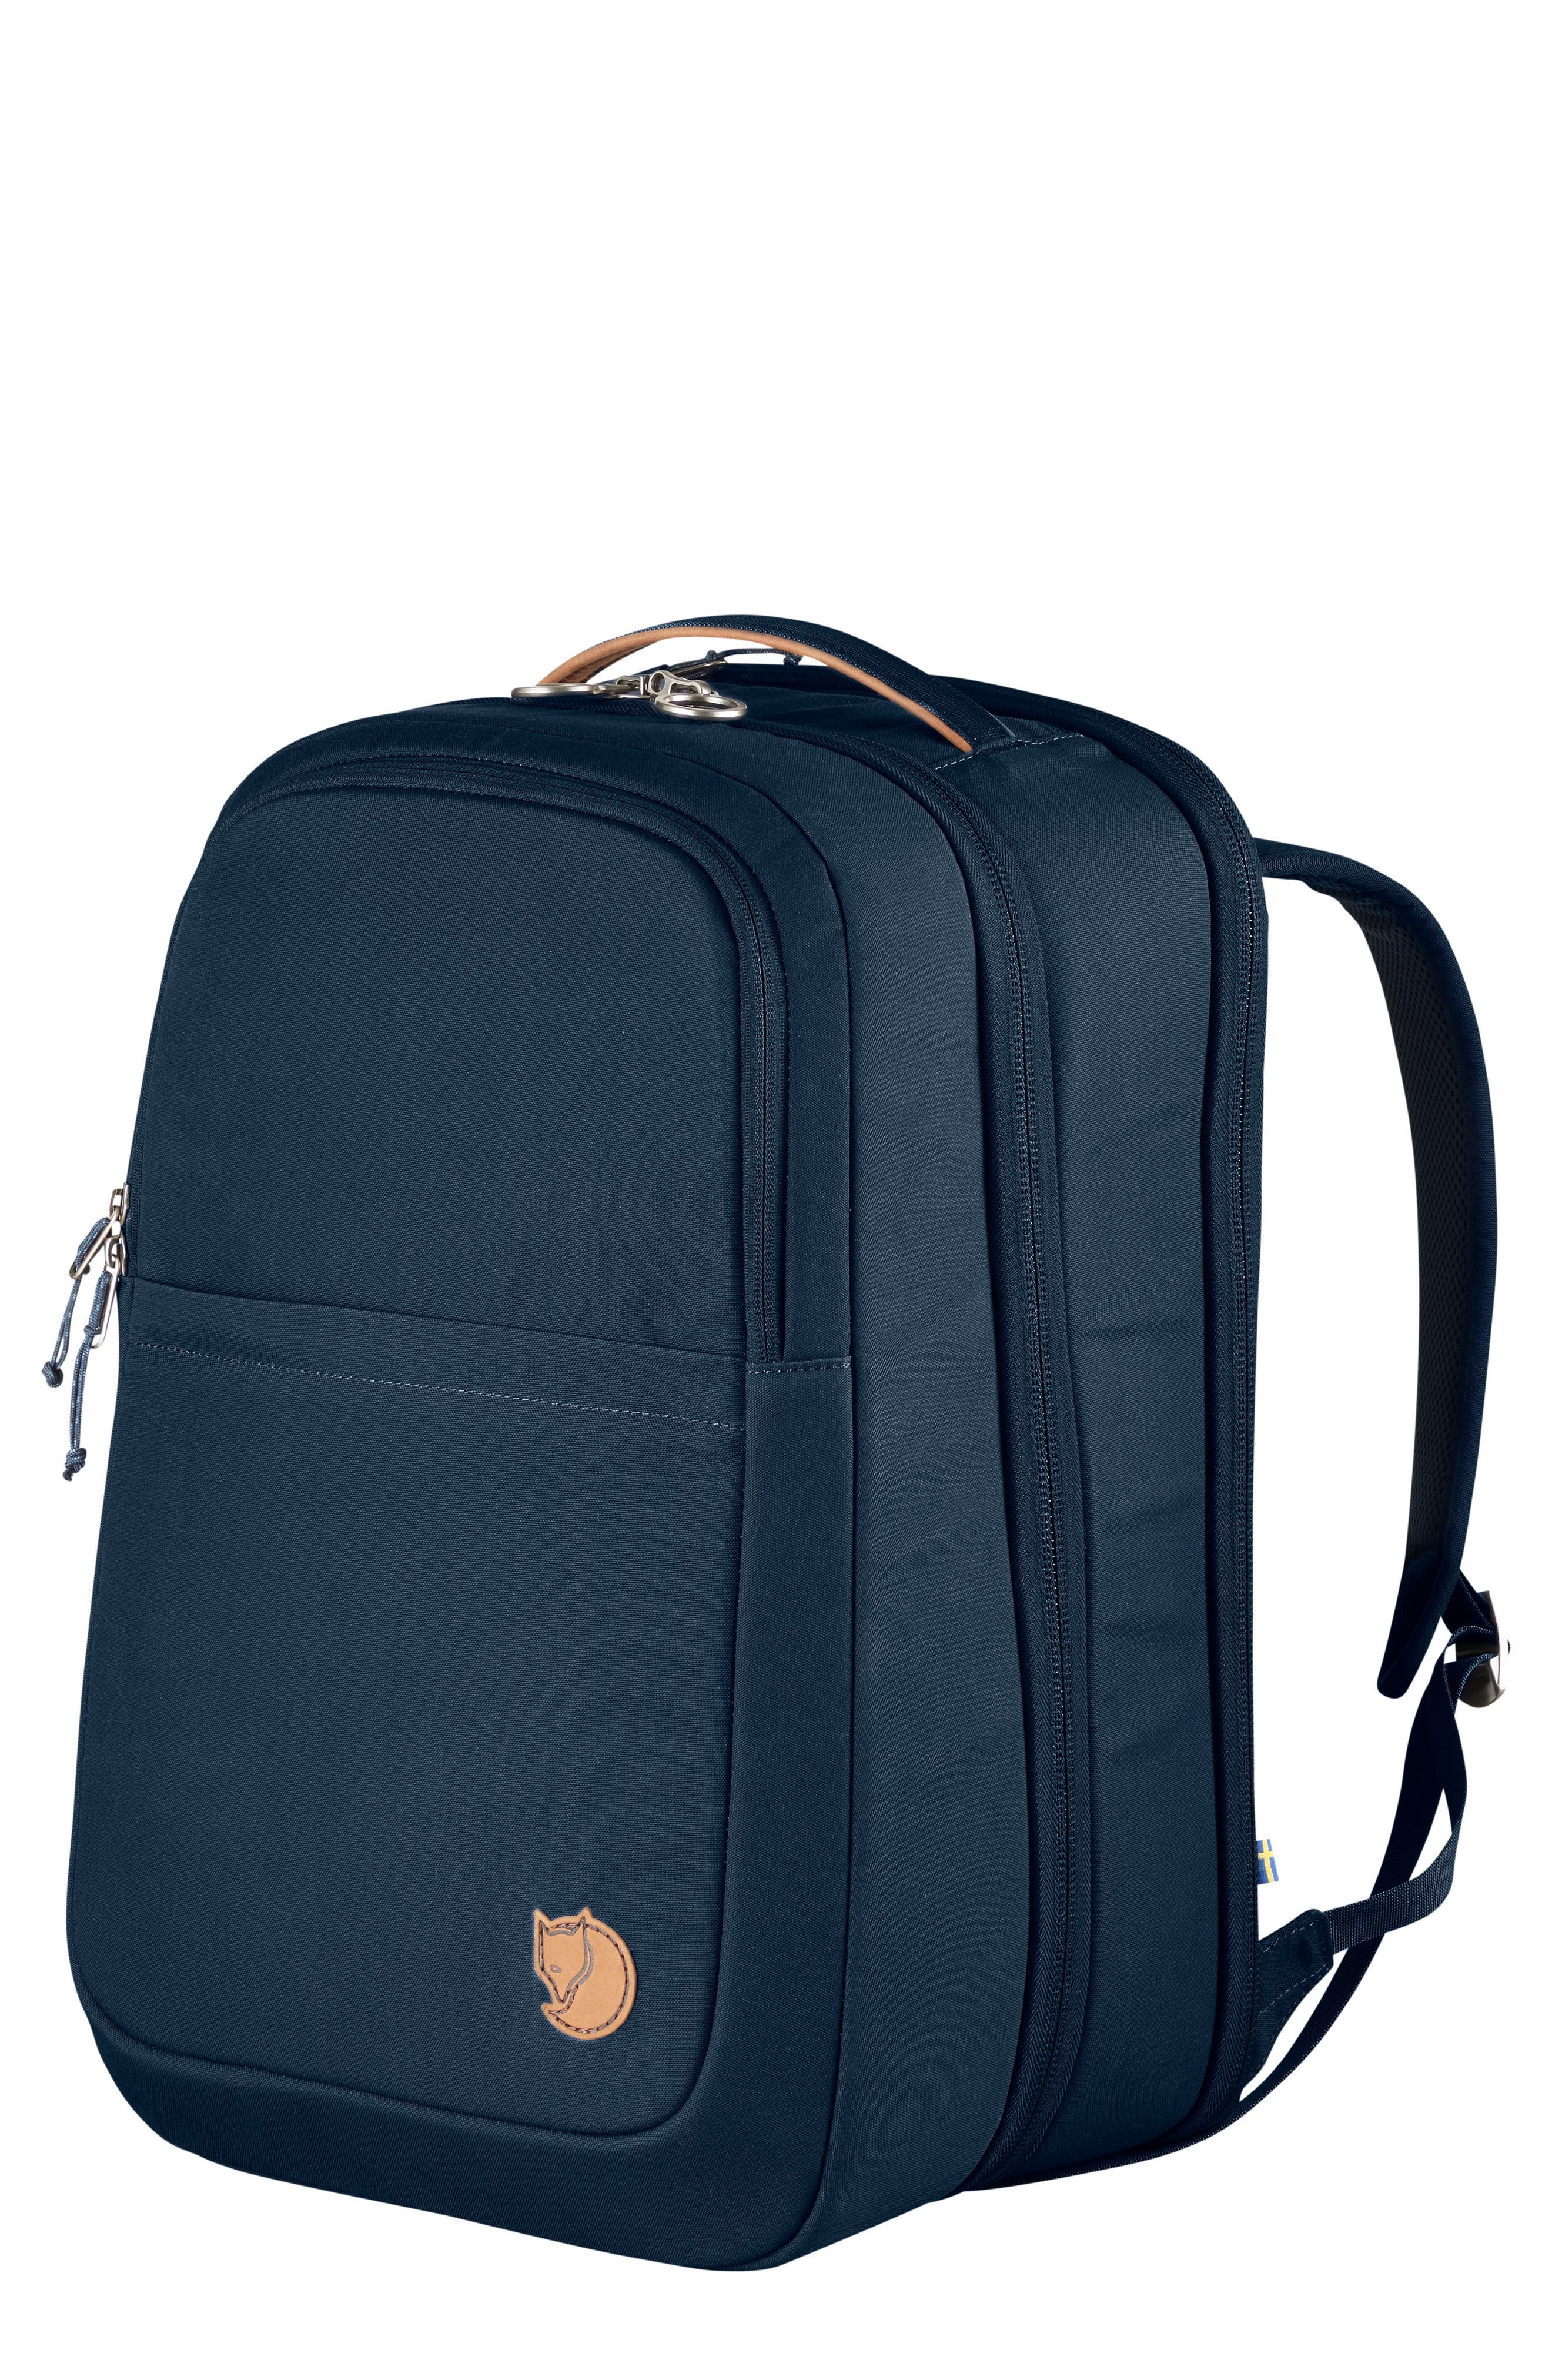 Travel Backpack,                         Main,                         color, Navy